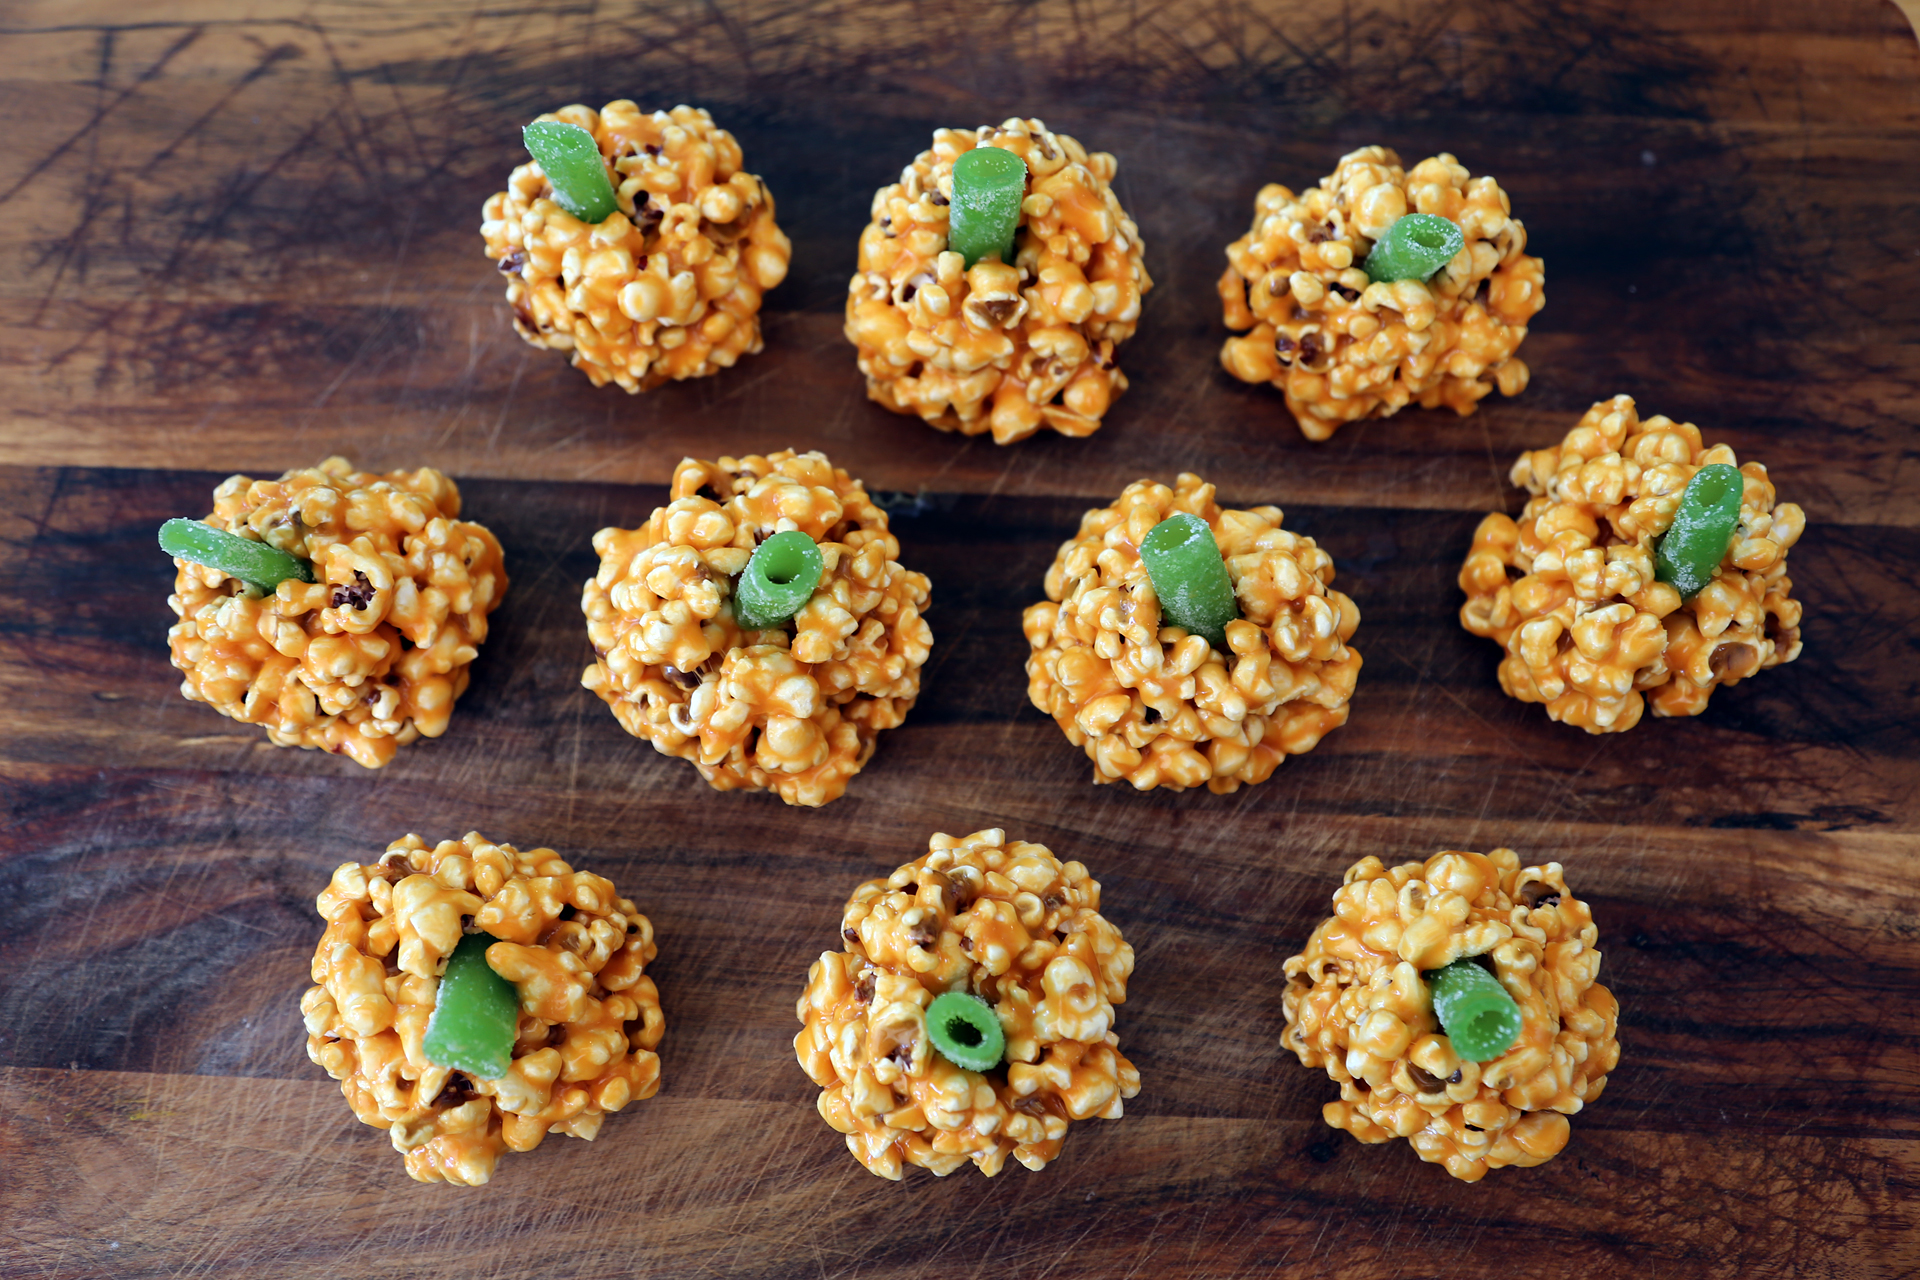 Salted Caramel Popcorn Jack-O-Lanterns With Green Candy Stems